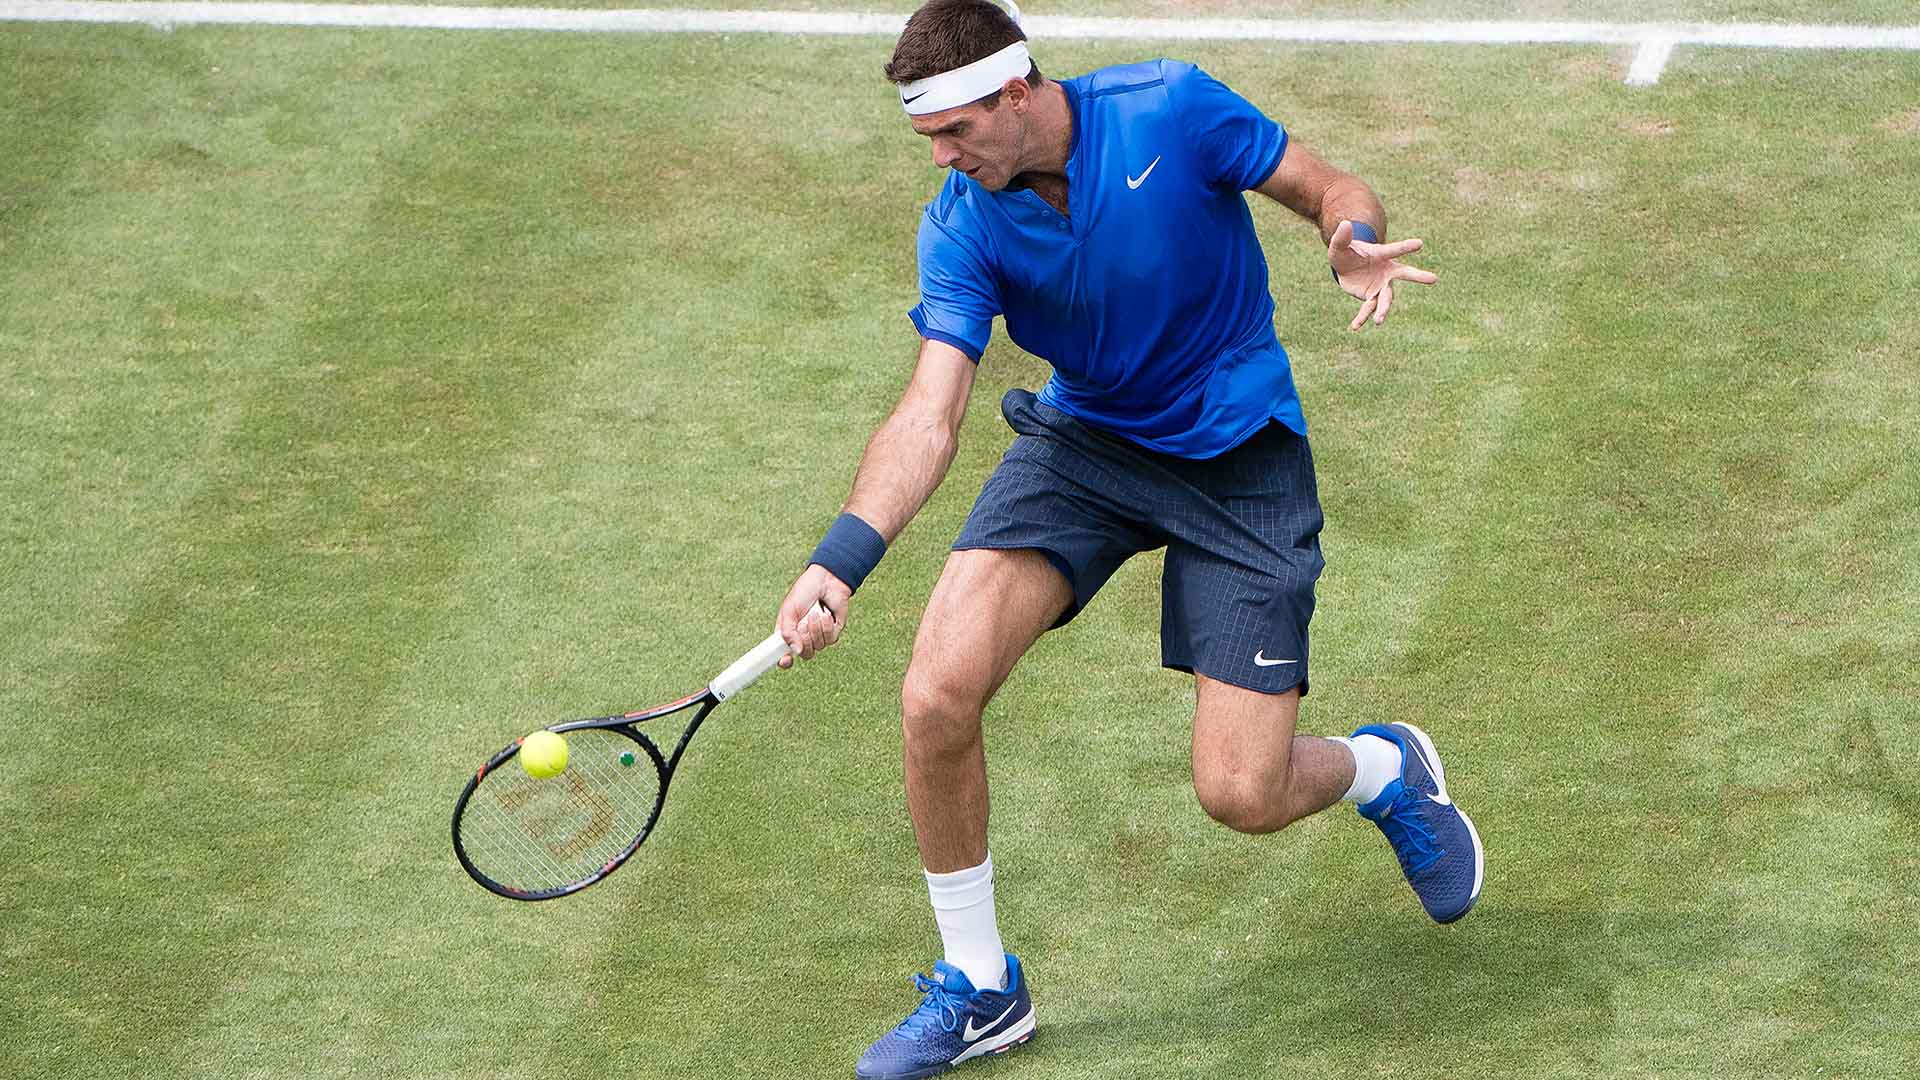 new product 514f4 b3f67 ... his old Nike Air Max Cage instead of the new one since he came back  this year, do you think they will be on sale if Del Potro definitely come  back